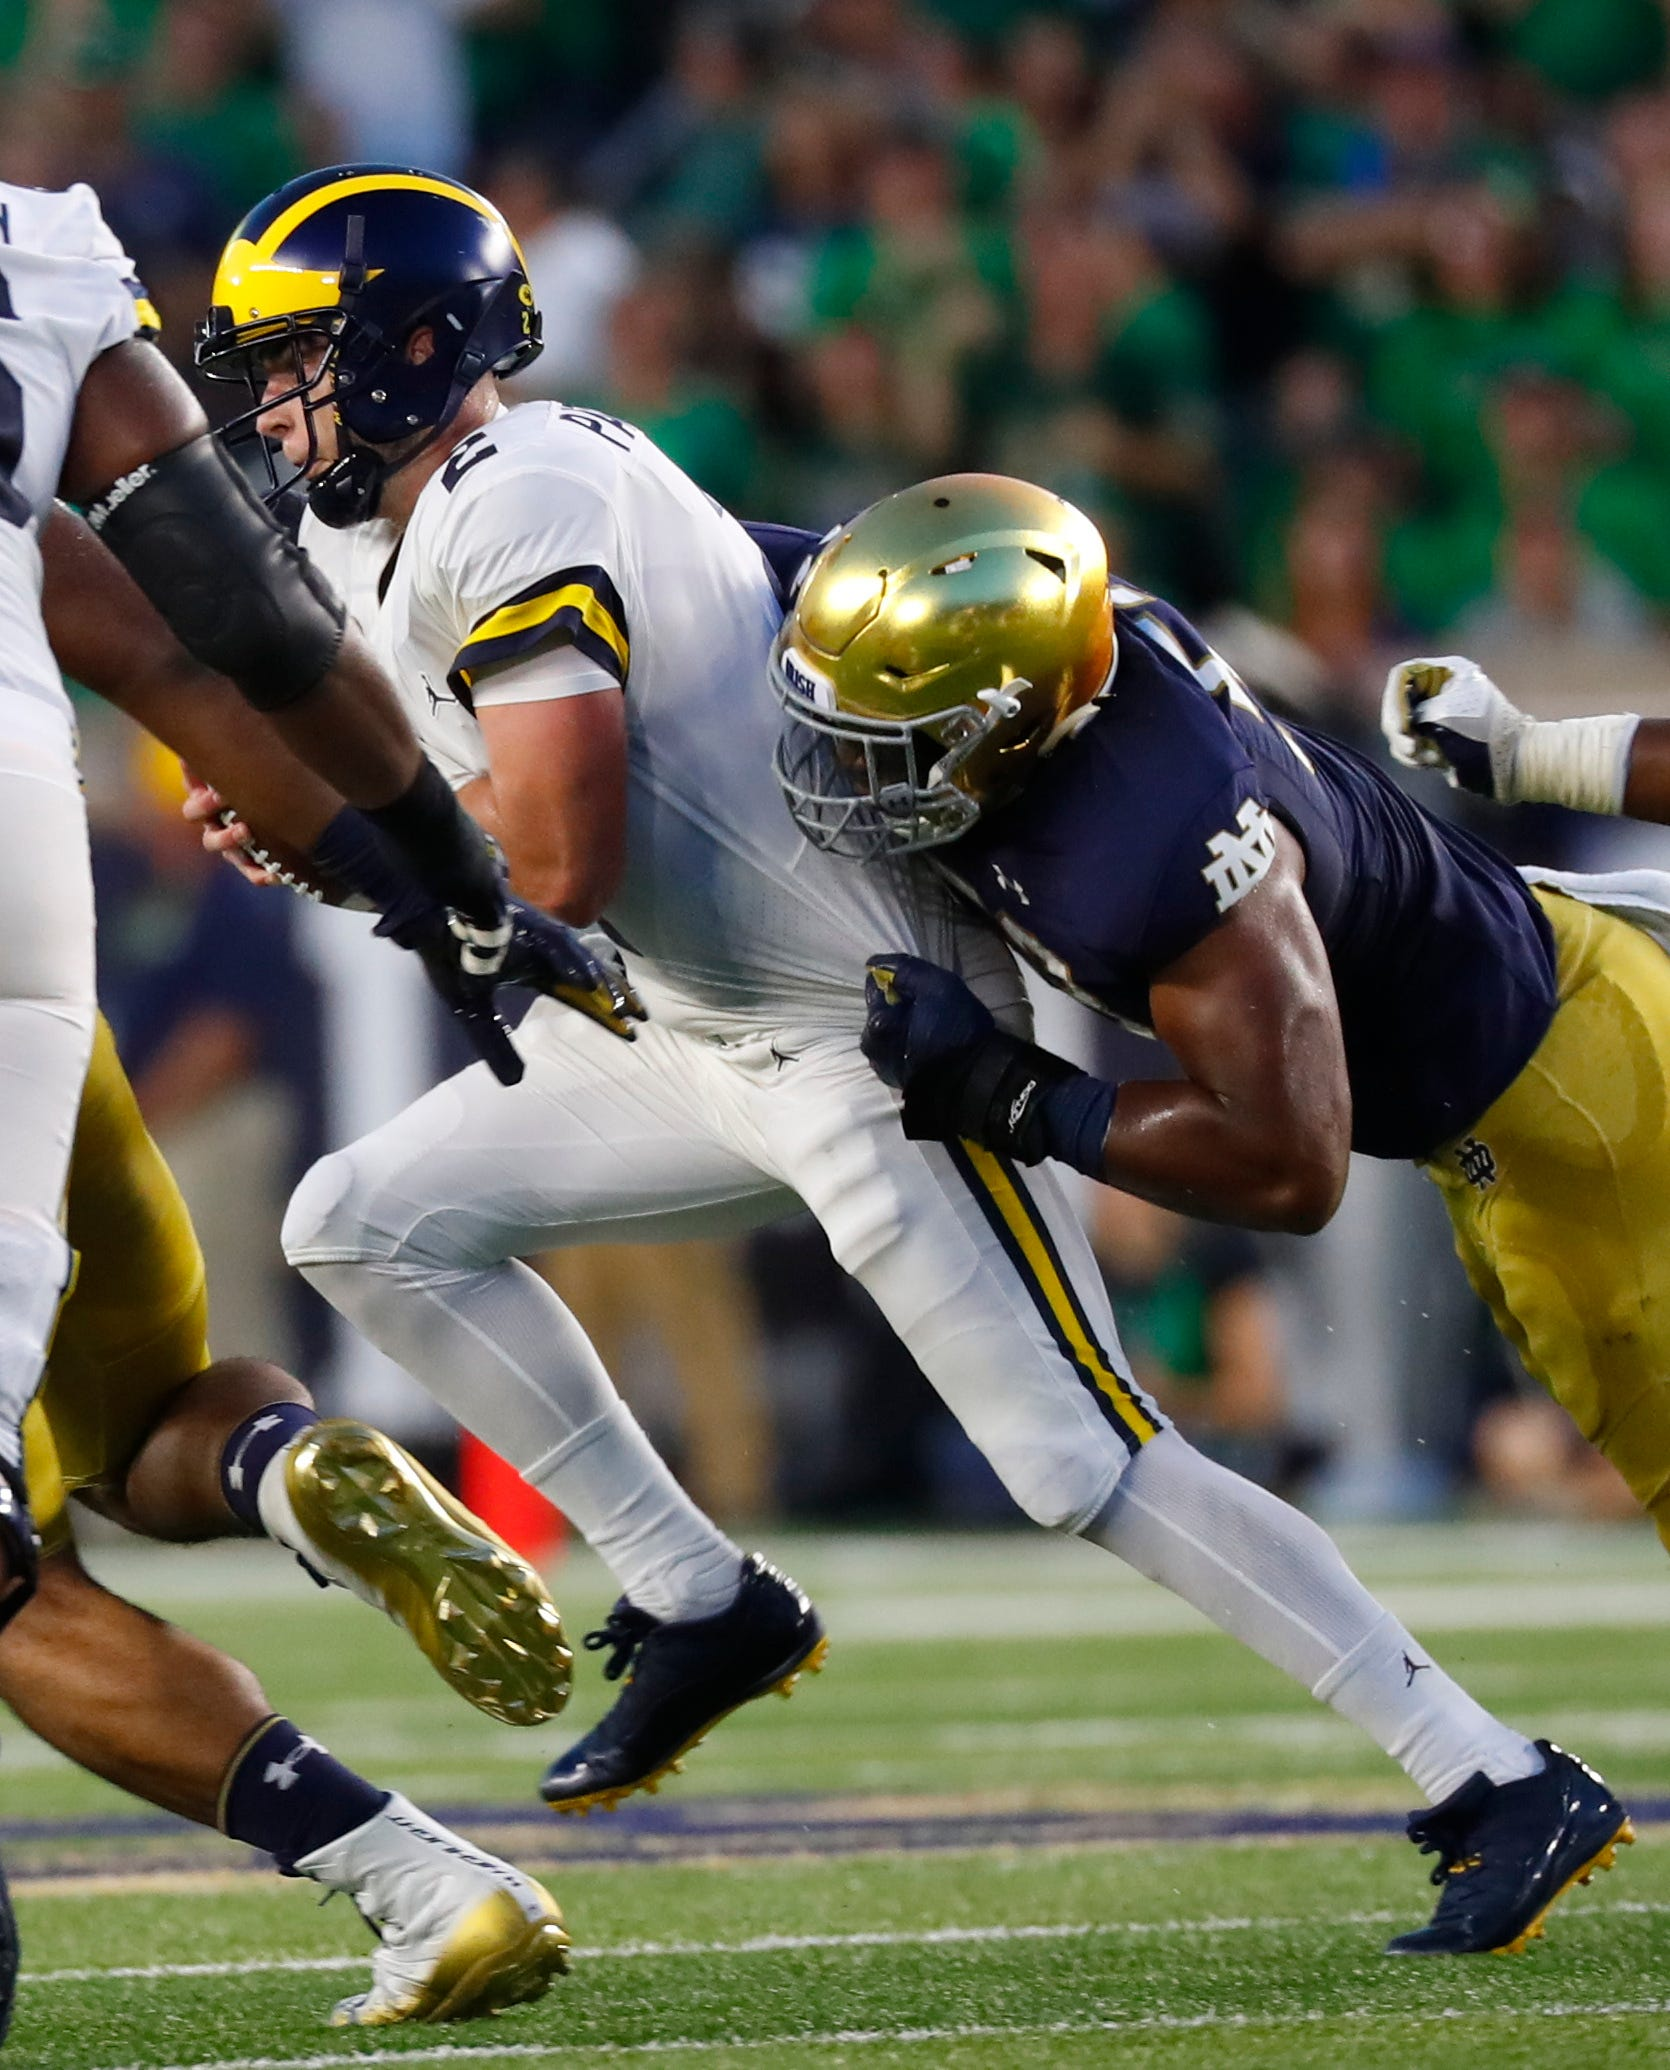 the best attitude 9282b c85ac 8 Notre Dame Notre Dame junior DE Khalid Kareem making most of his  opportunity 7 months ago Ø Usatoday Ø USA (GANNETT Syndication Service  152) ...